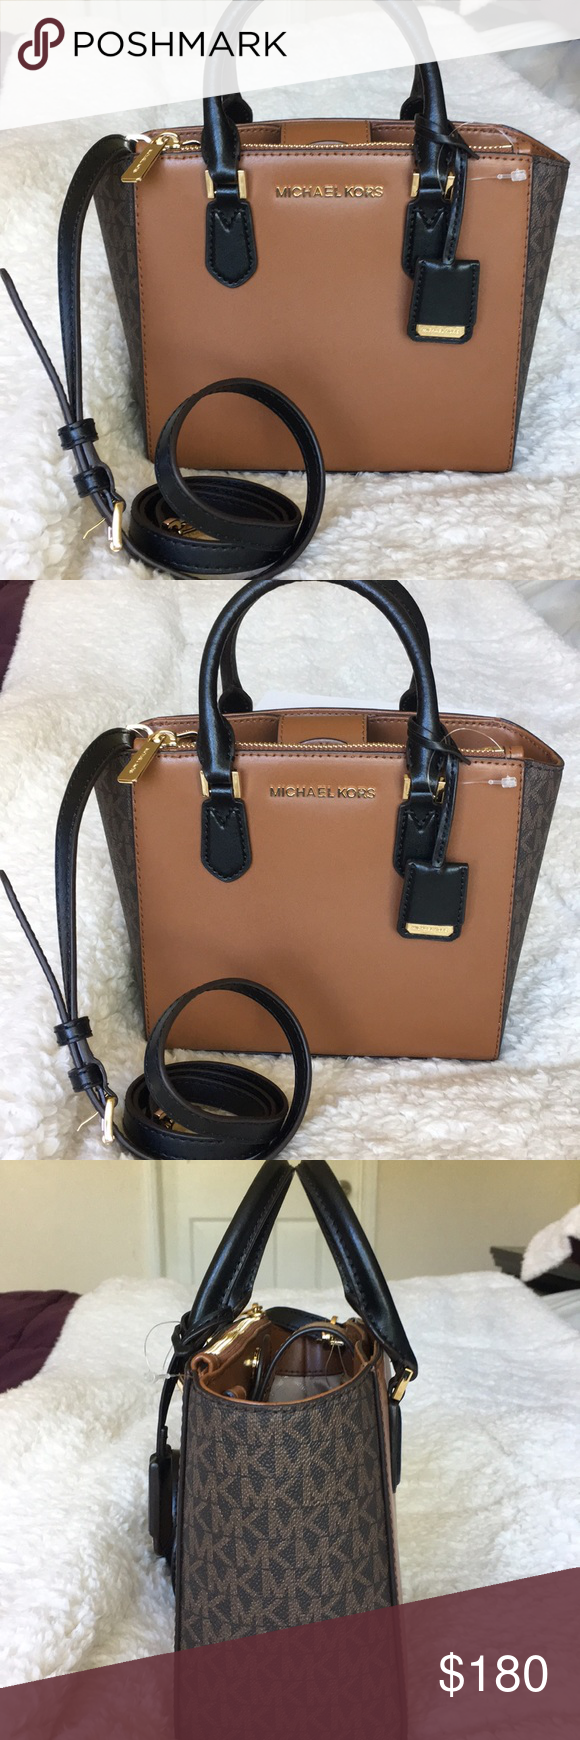 a49afb56fea6 NWT Michael Kors PVC/LEATHER Carolyn small tote STYLE: 35F8GY7T1V Color:  Brown/Luggage MICHAEL Michael Kors Calolyn Collections, This Small Tote  Crossbody ...